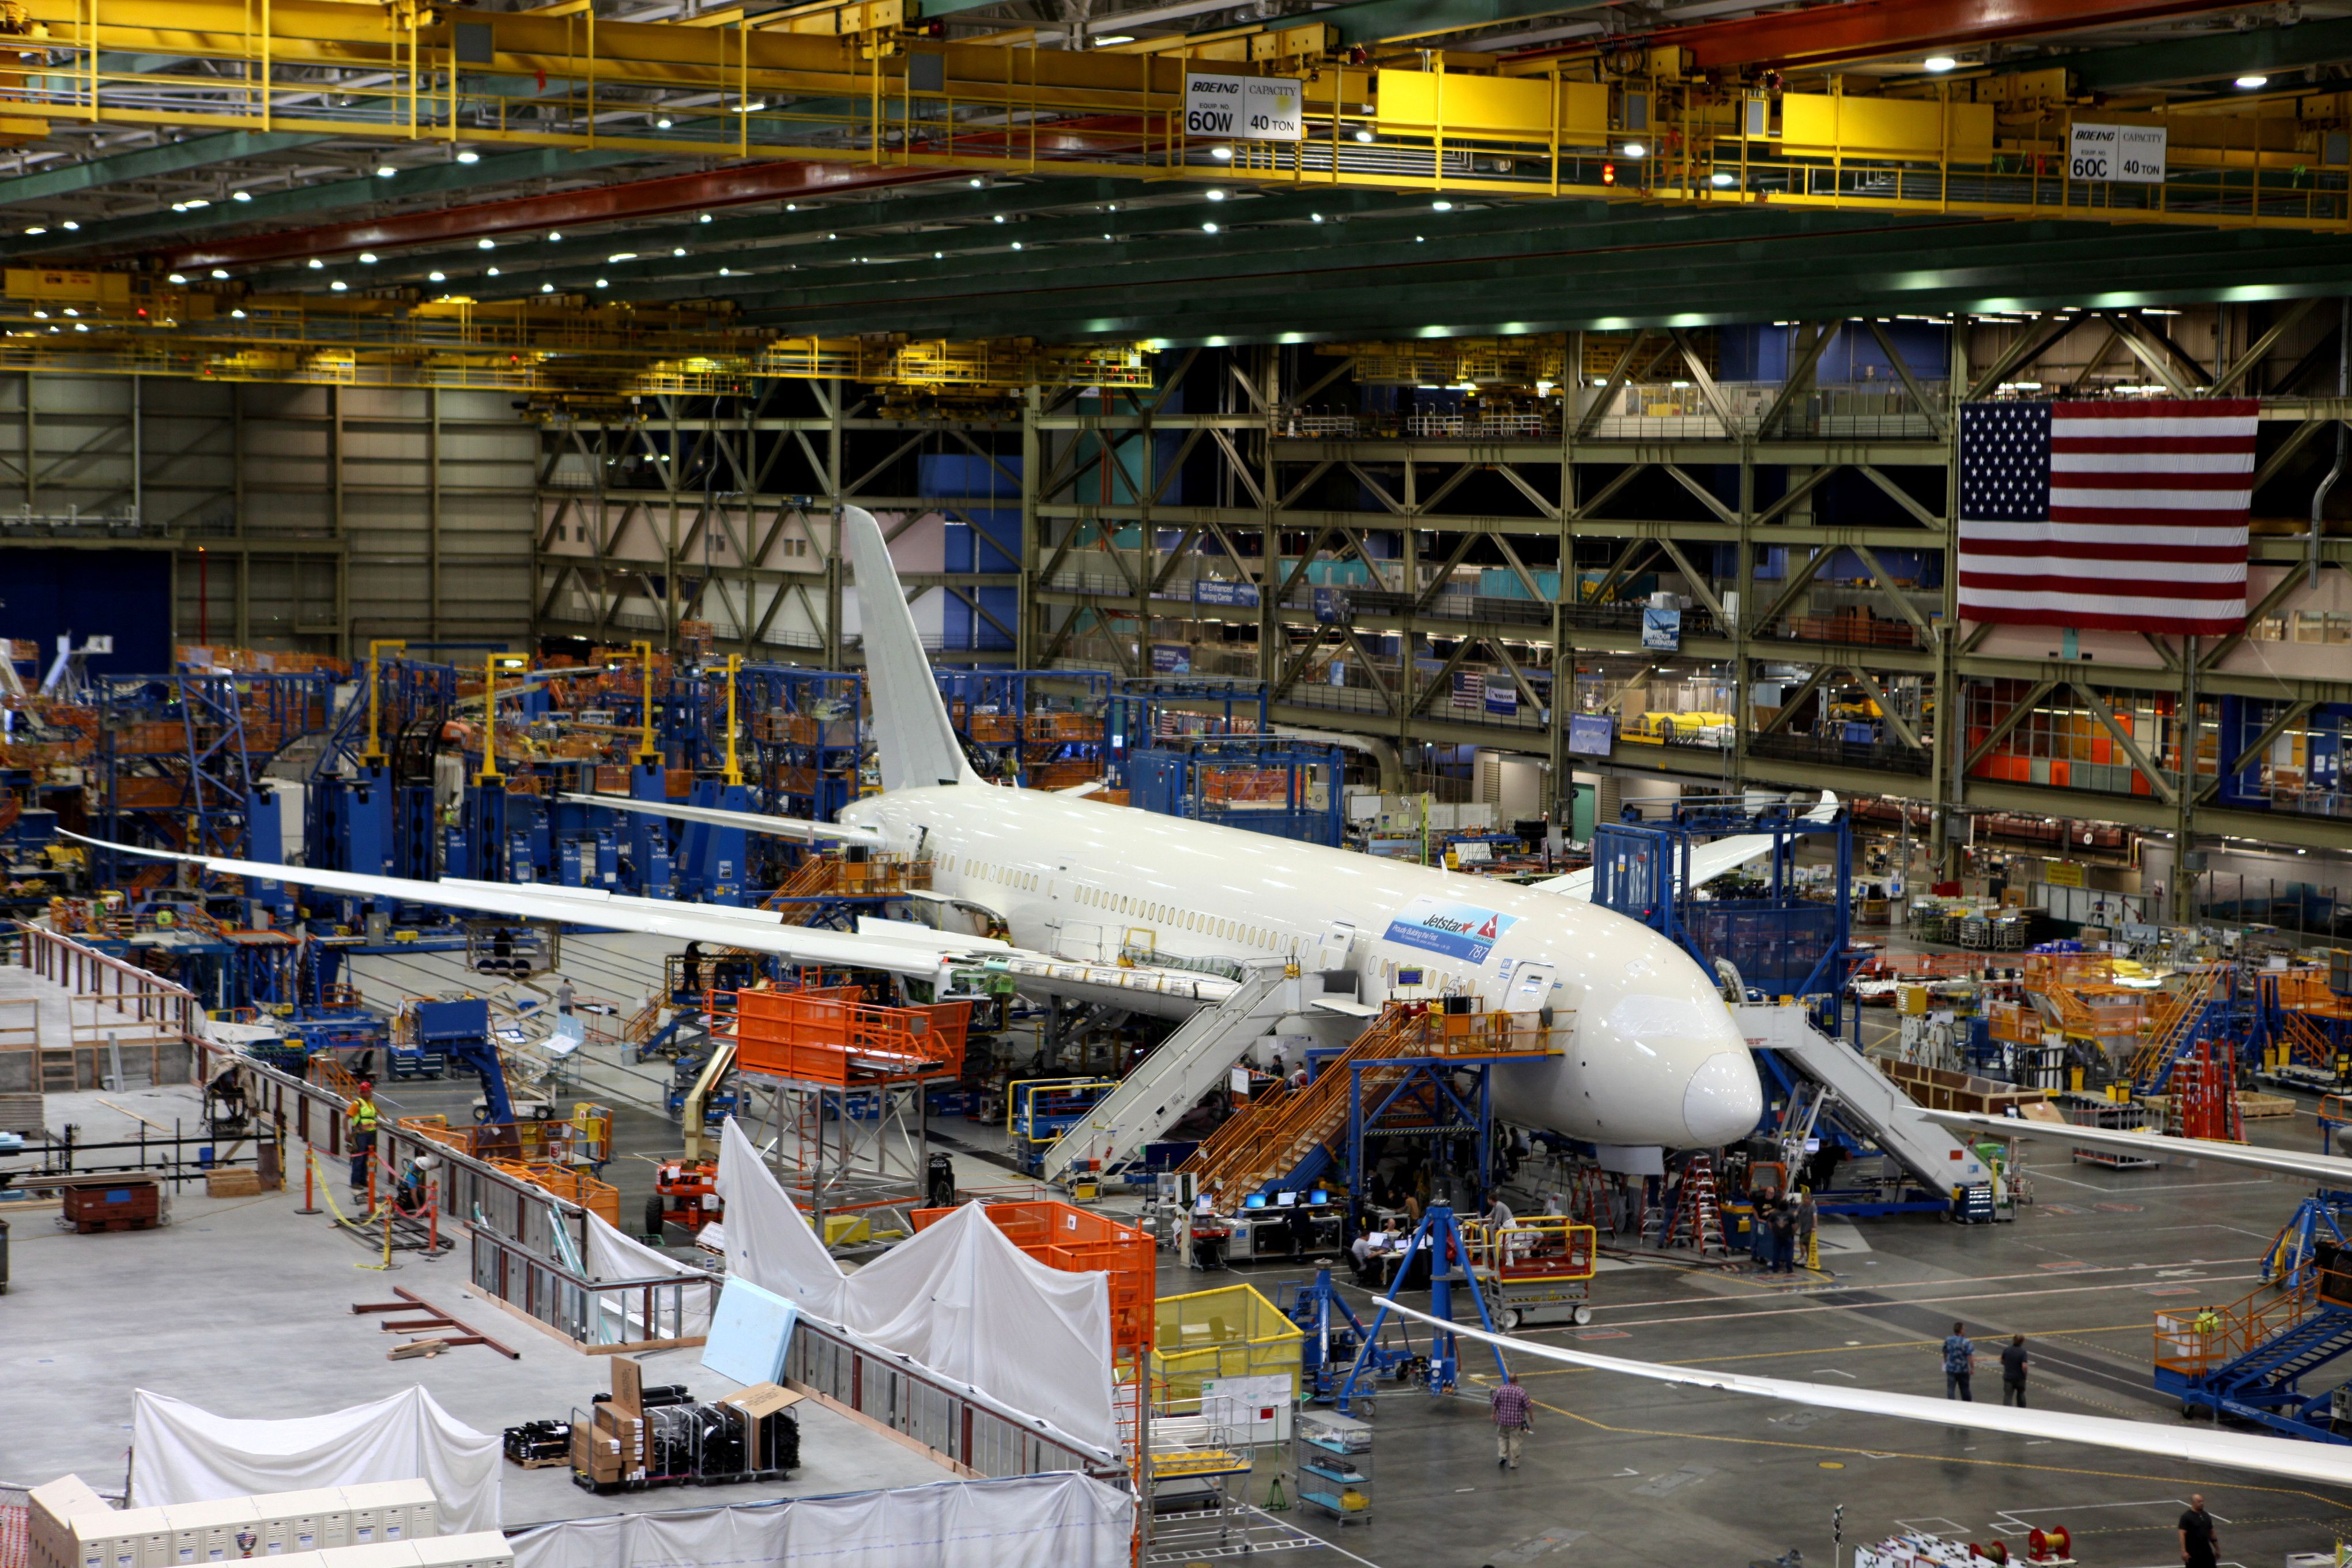 A view of the interior of the Boeing facility.